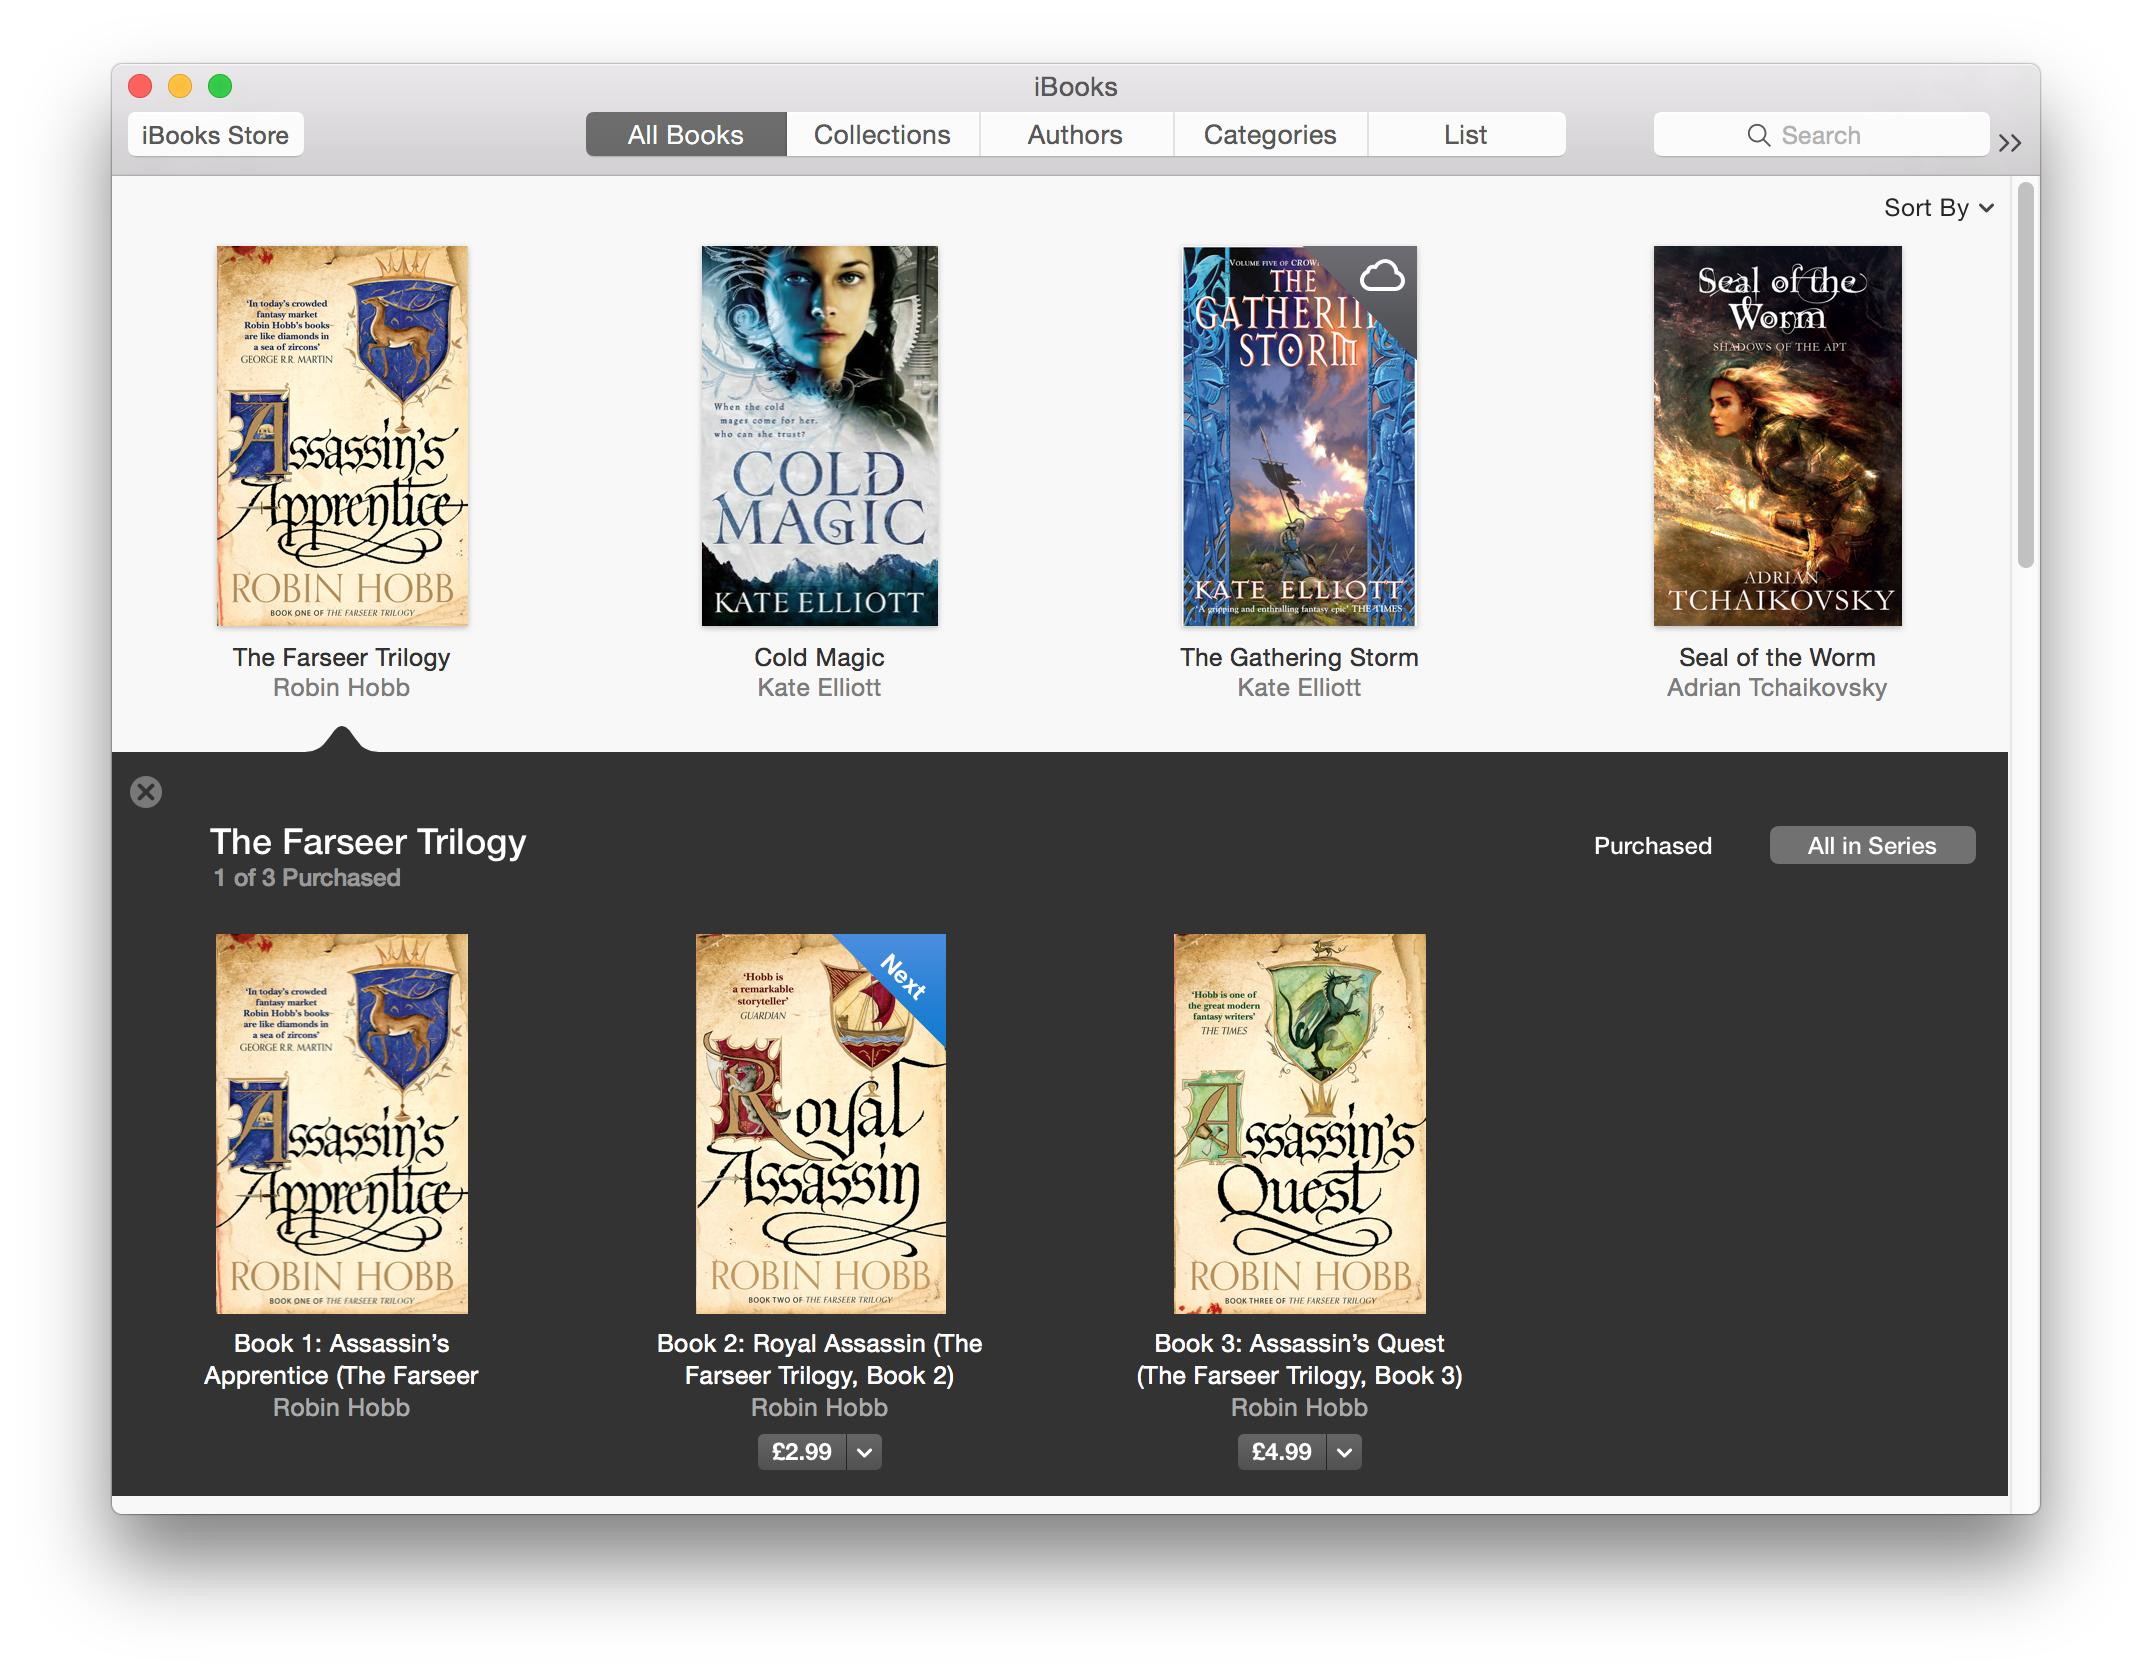 Copiar Libros De Ibooks A Pc Solucionado Ibooks Serie De Metadatos Página Web